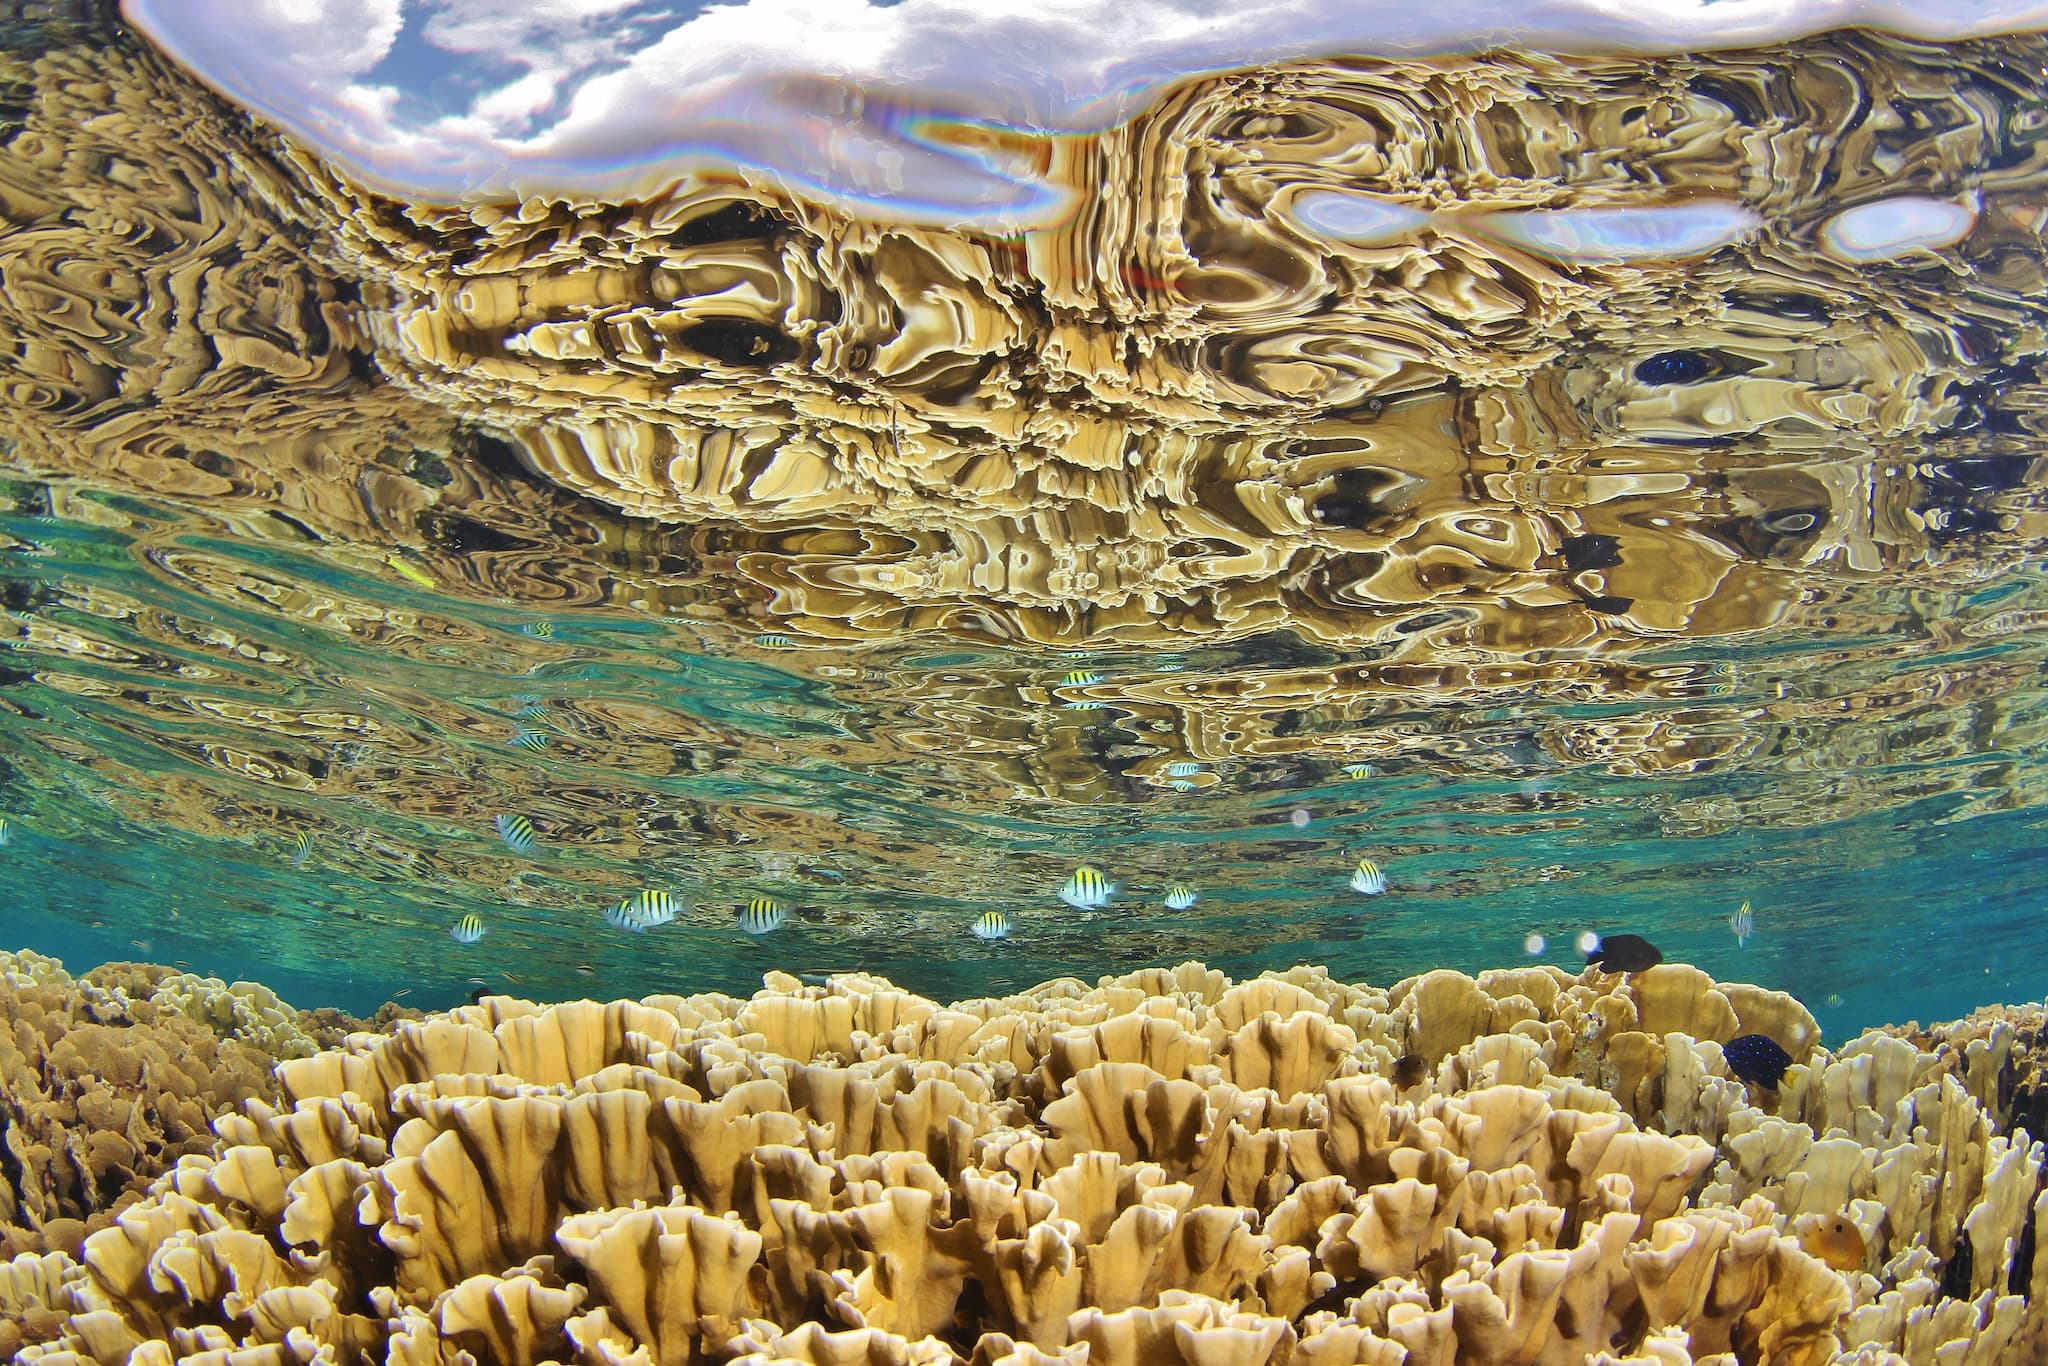 Coral Reef Alliance, Craft in America